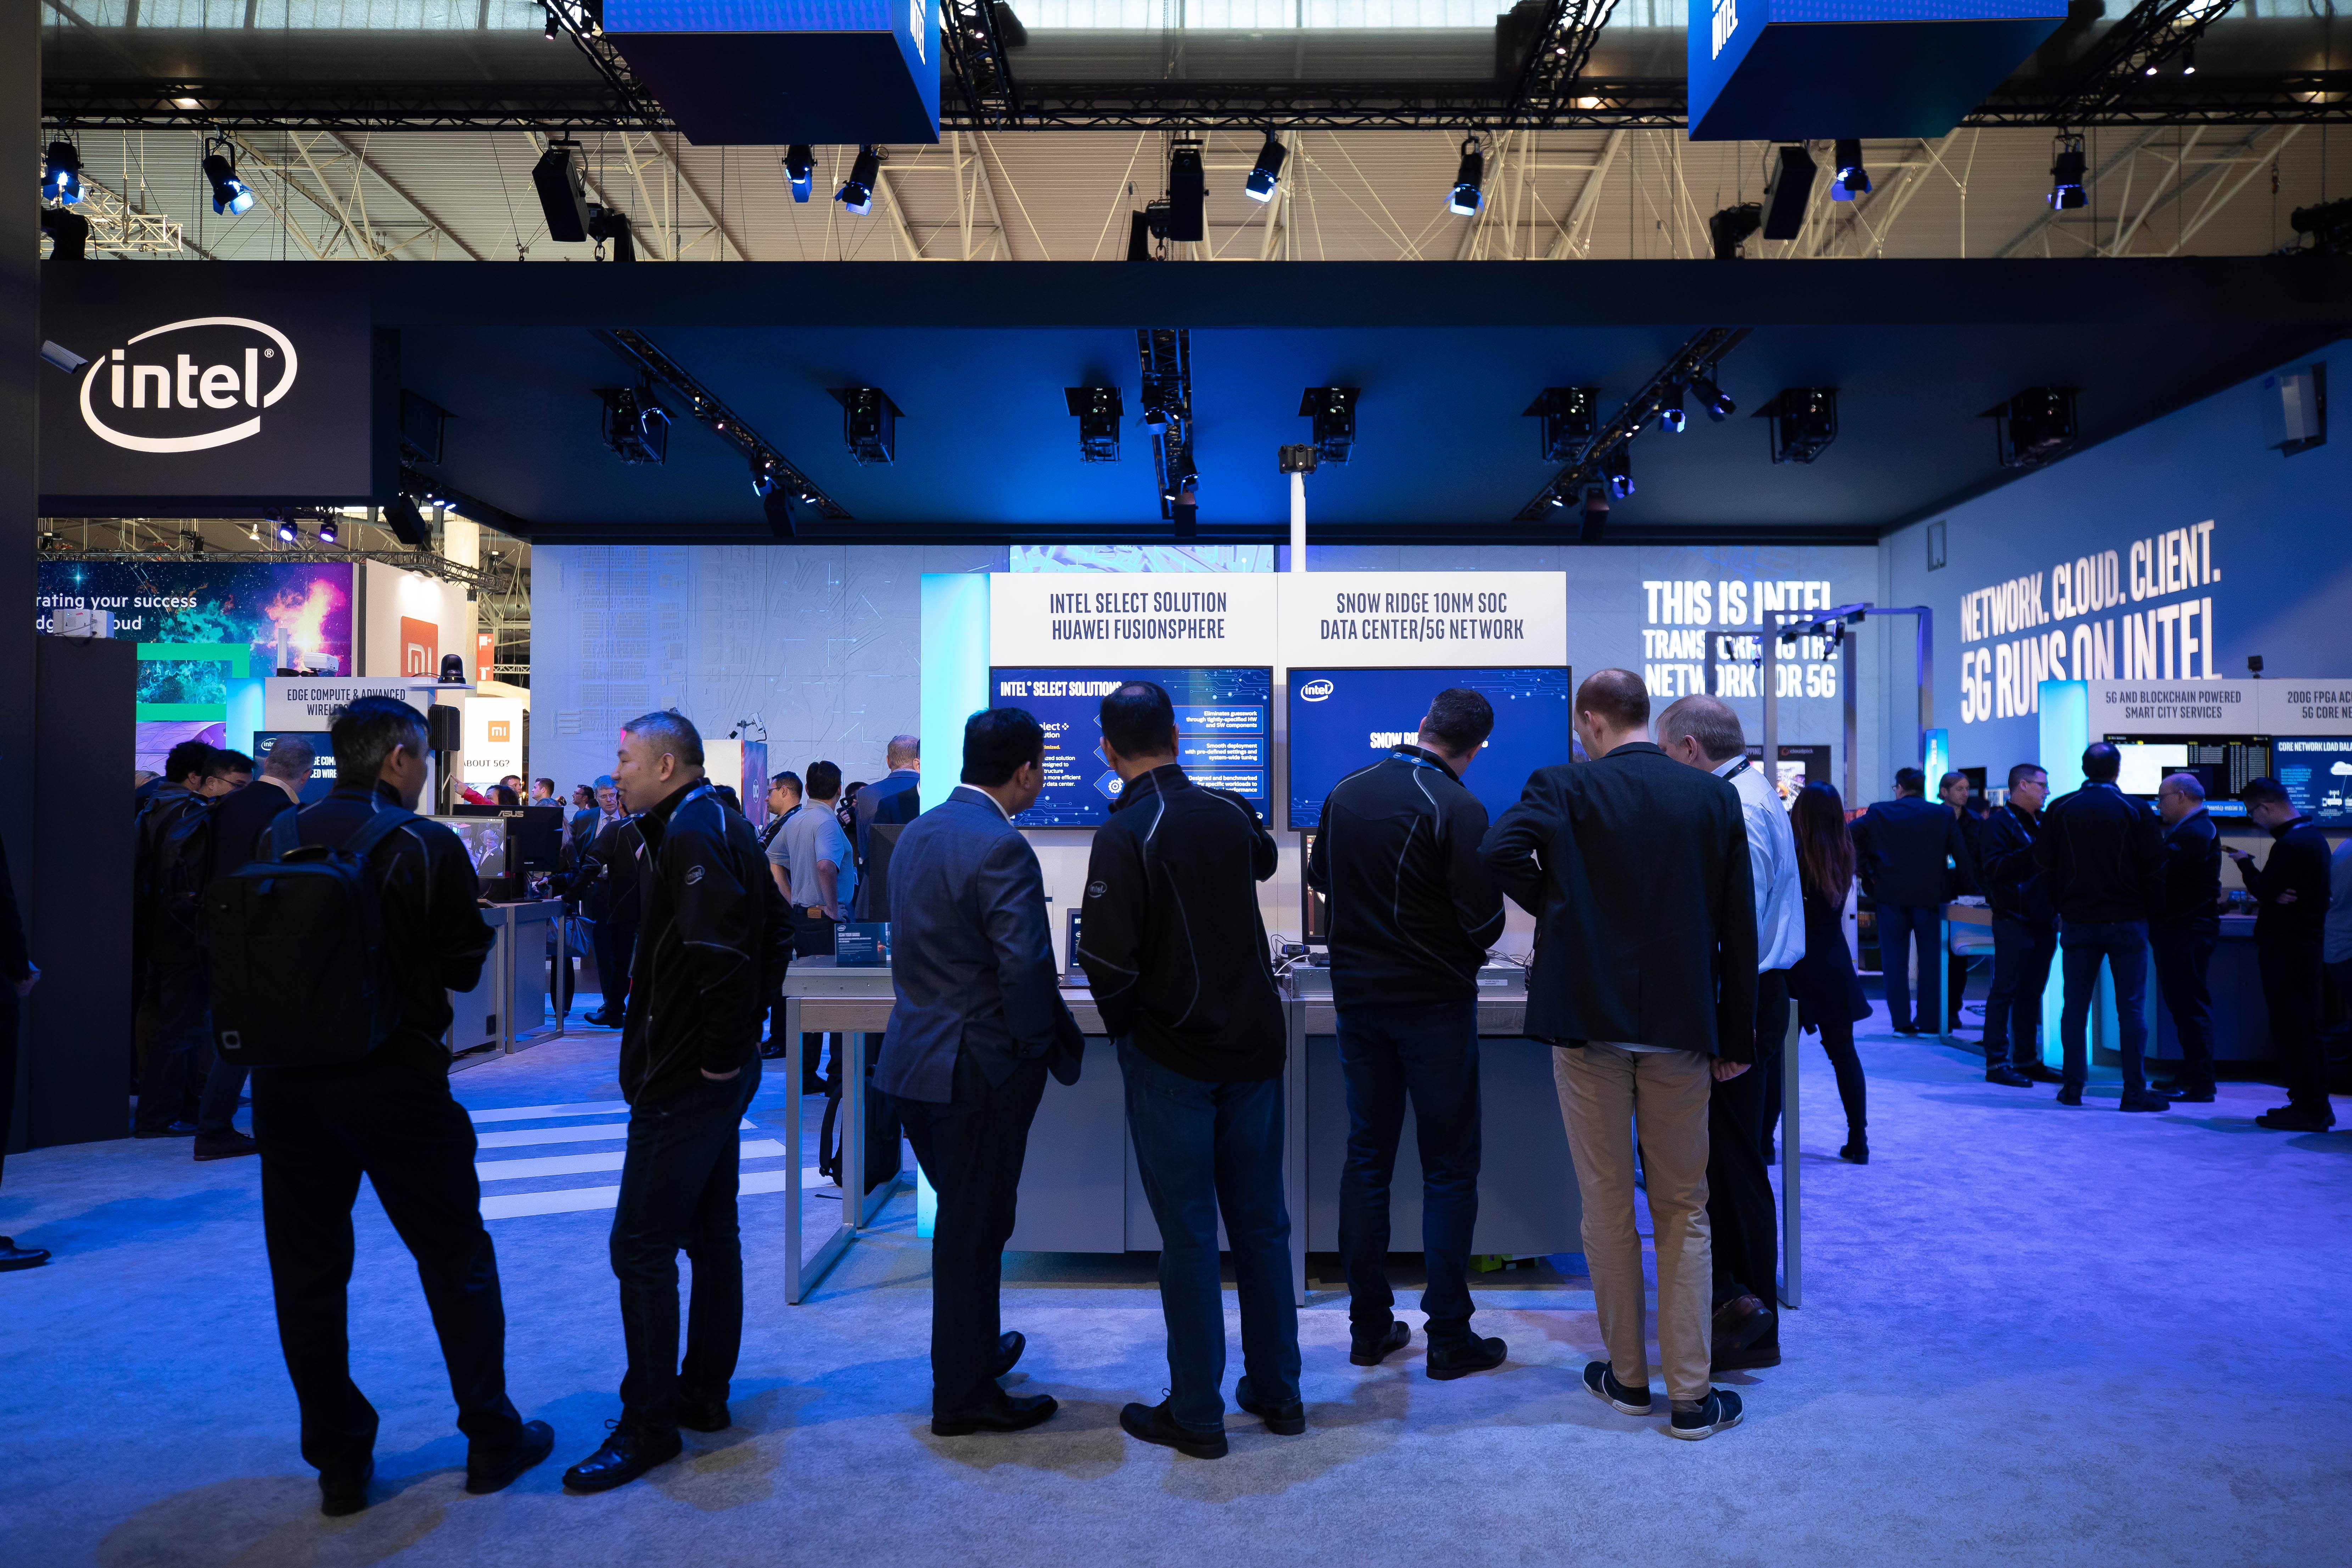 DAY 1: Visitors tour Intel's booth at MWC 2019 on Monday, Feb. 25, 2019. Intel showcase its latest technologies in 5G and networking from Feb. 25-28, 2019, at Mobile World Congress 2019 in Barcelona. (Credit: Intel Corporation)